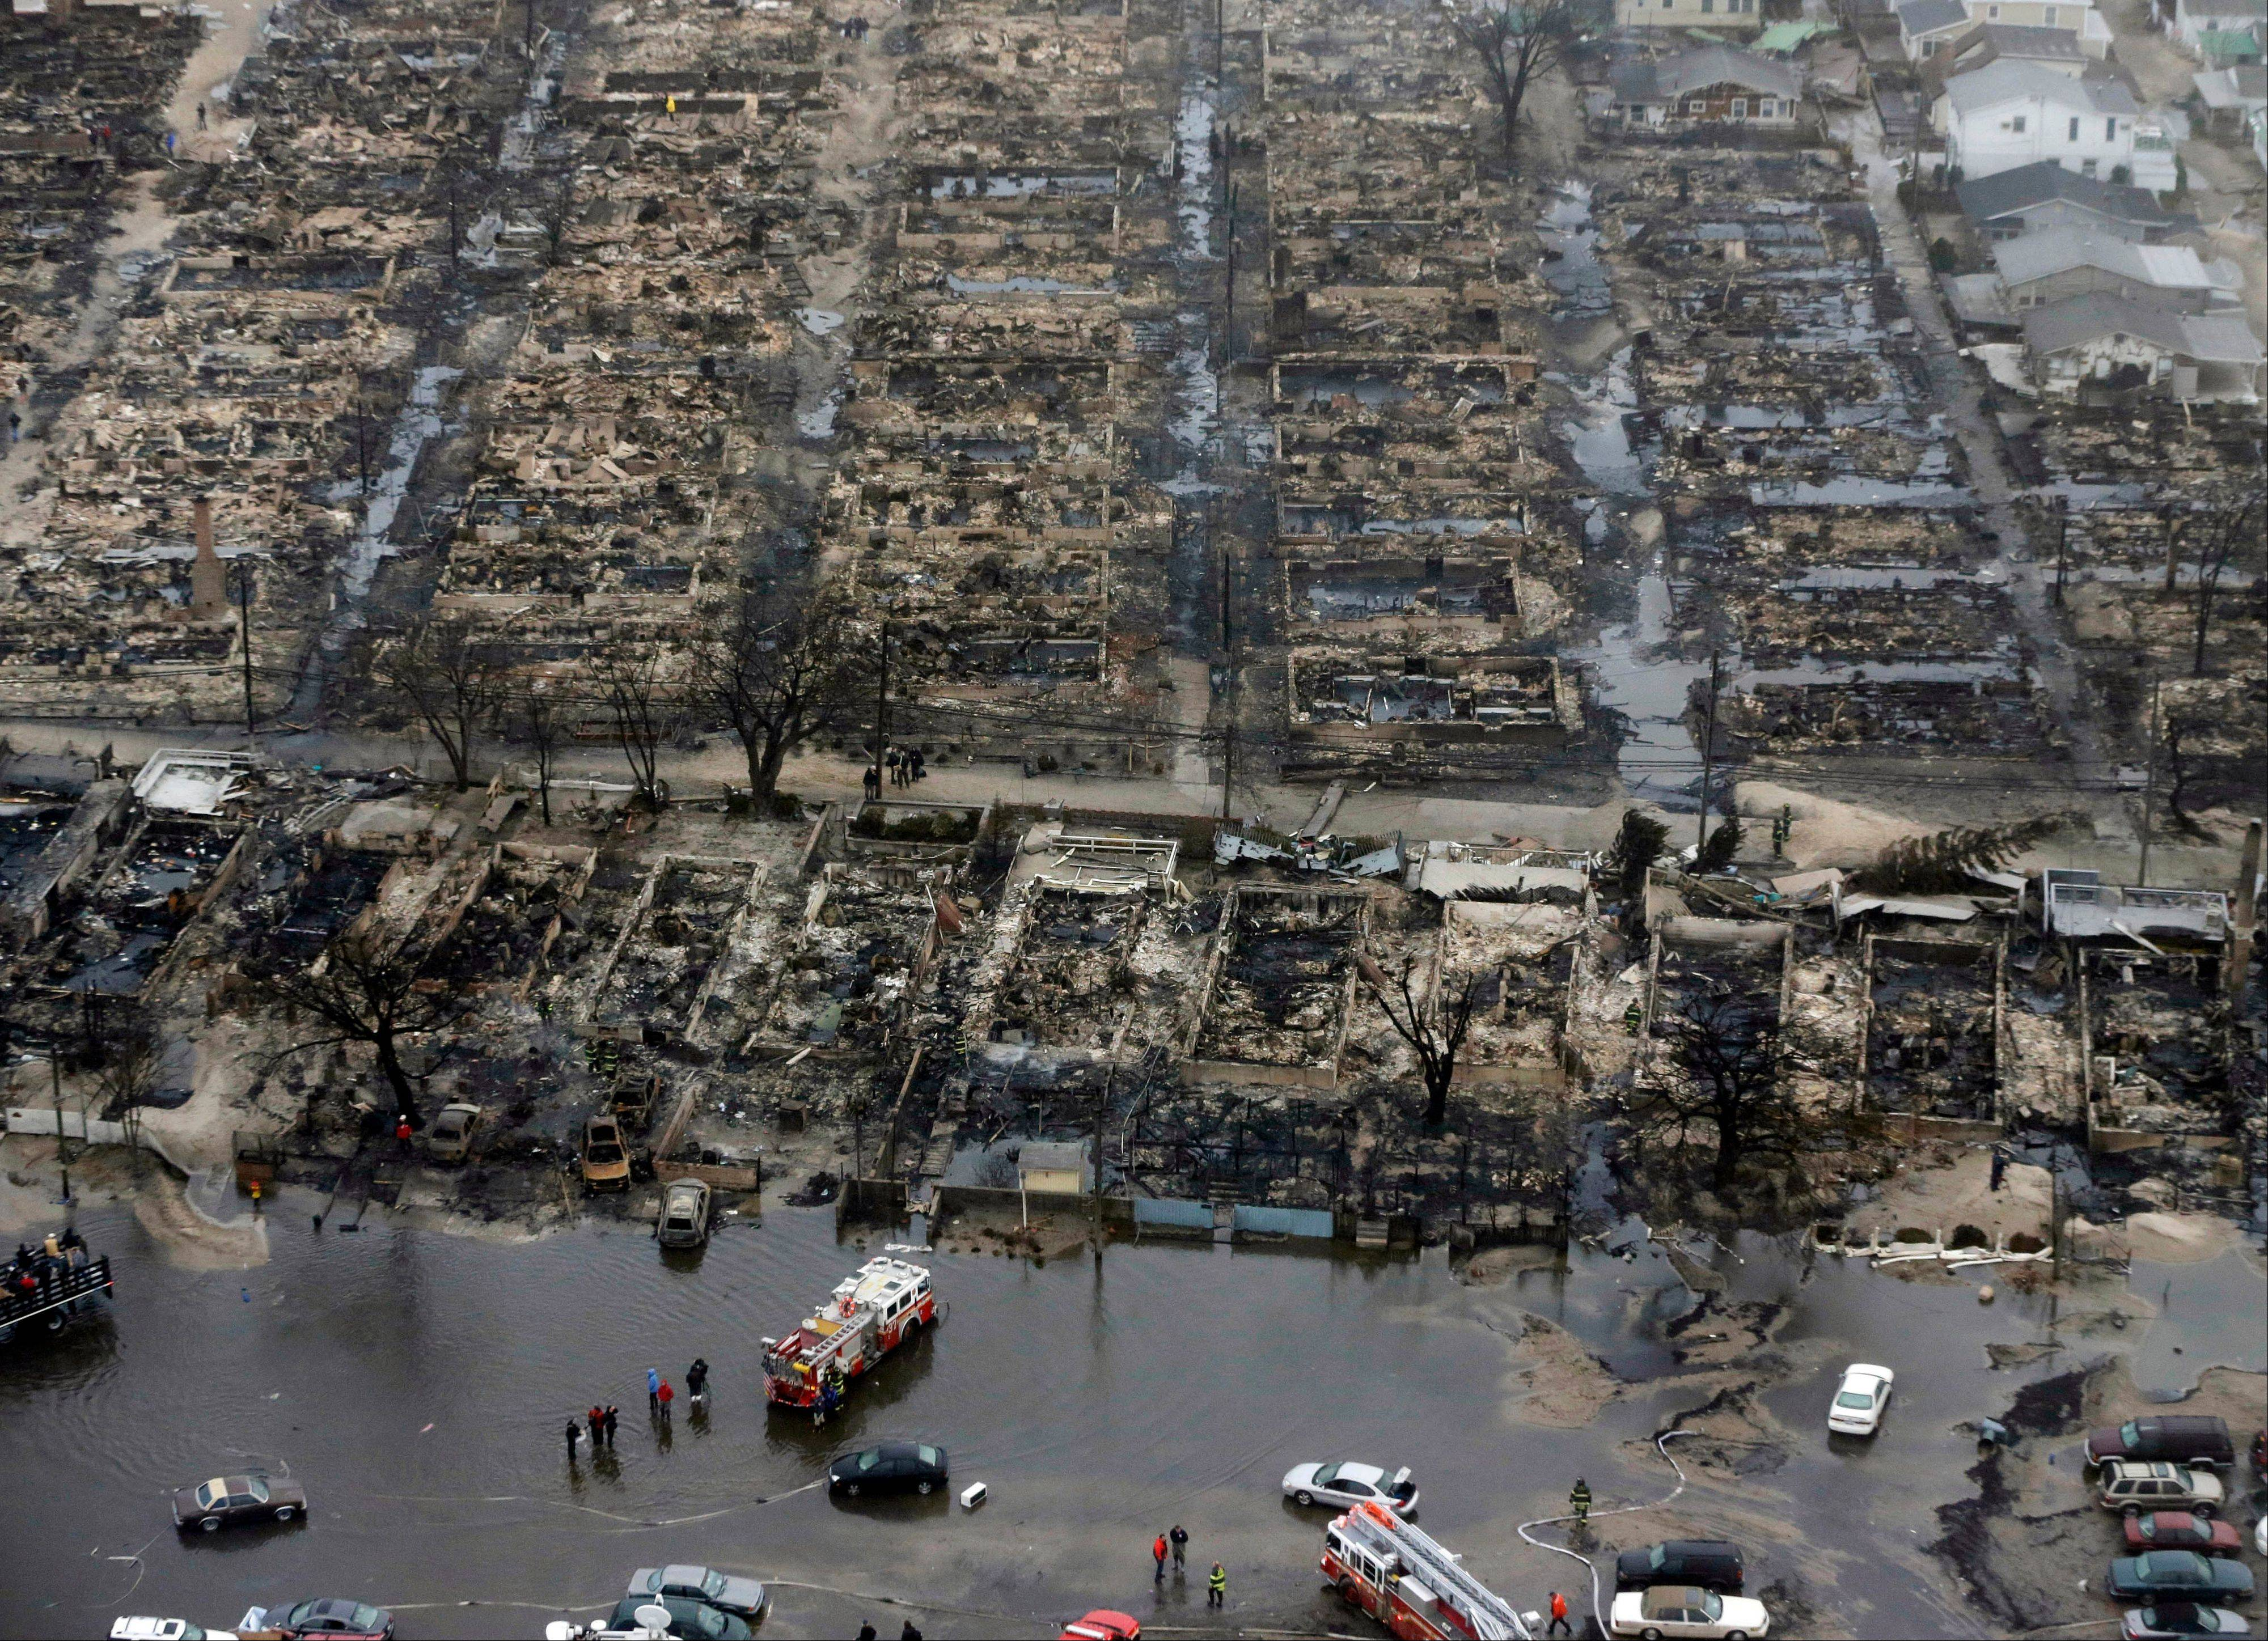 An aerial view of burned-out homes in the Breezy Point section of the Queens borough New York after a fire in the beachfront neighborhood as a result of Superstorm Sandy. Munich Re estimated insured losses from Sandy at $25 billion and total losses at $50 billion.